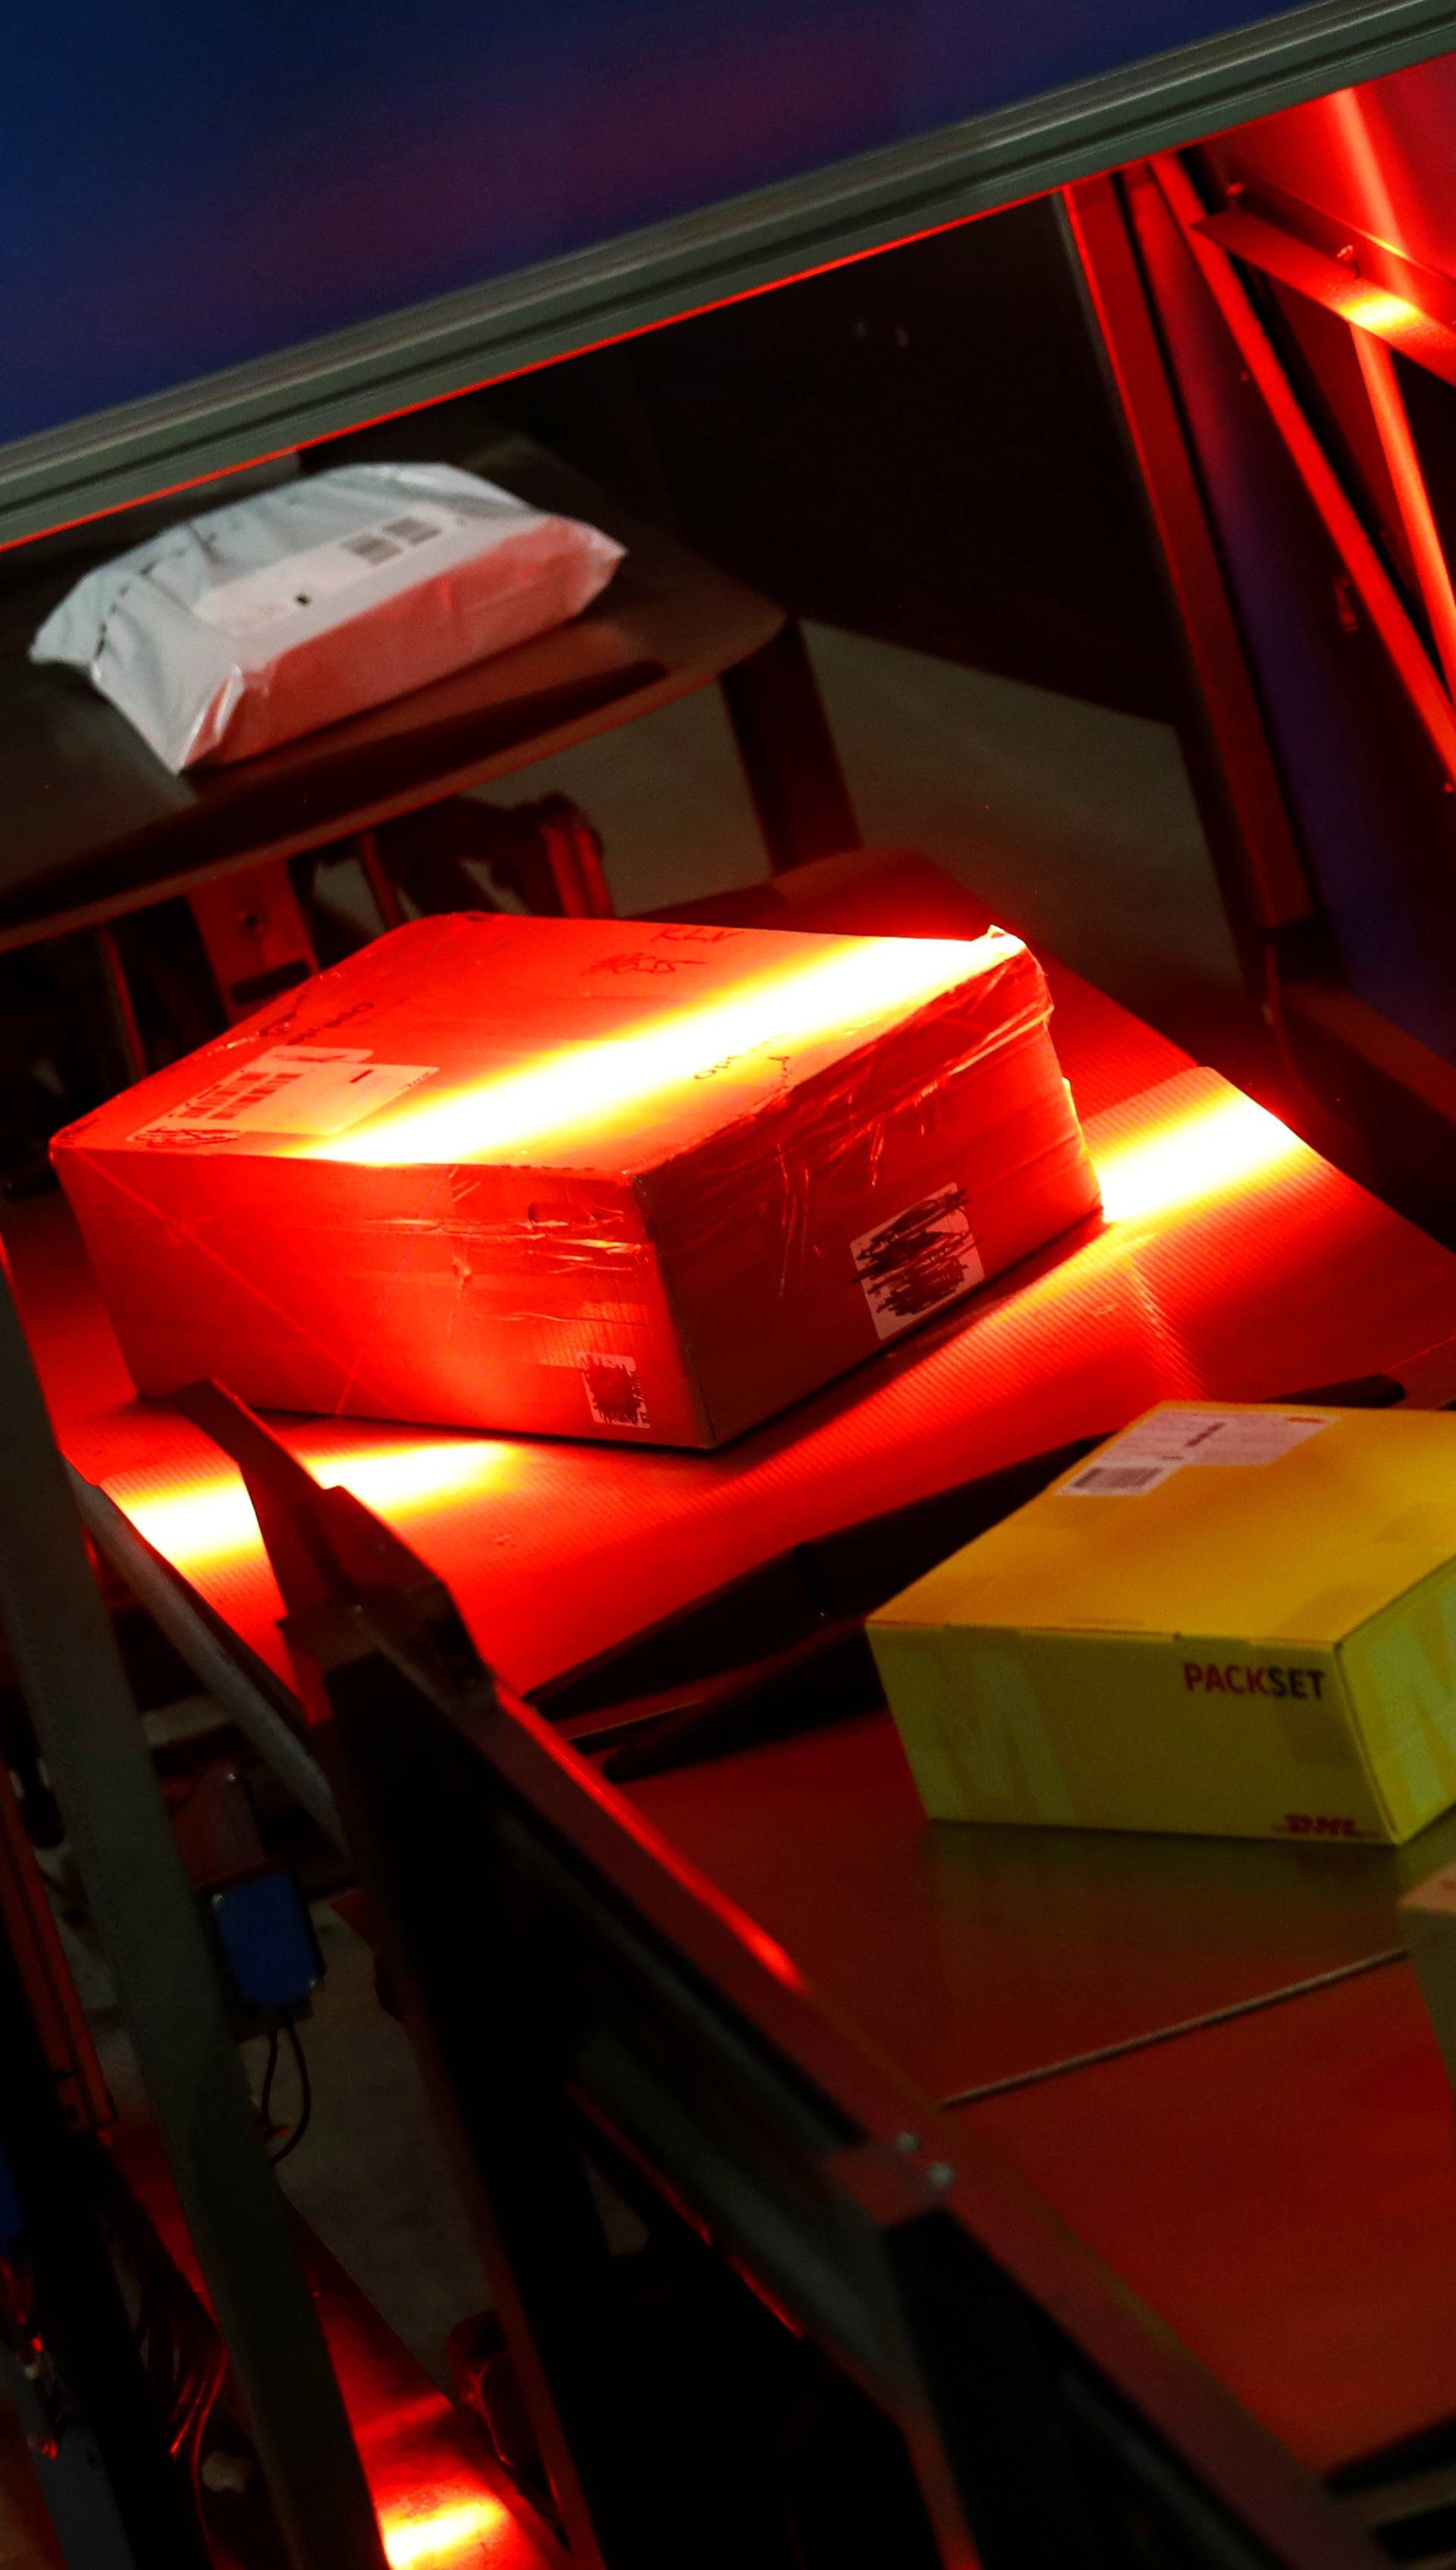 Parcels are scanned at a distribution centre of German postal and logistics group Deutsche Post DHL in Rodgau